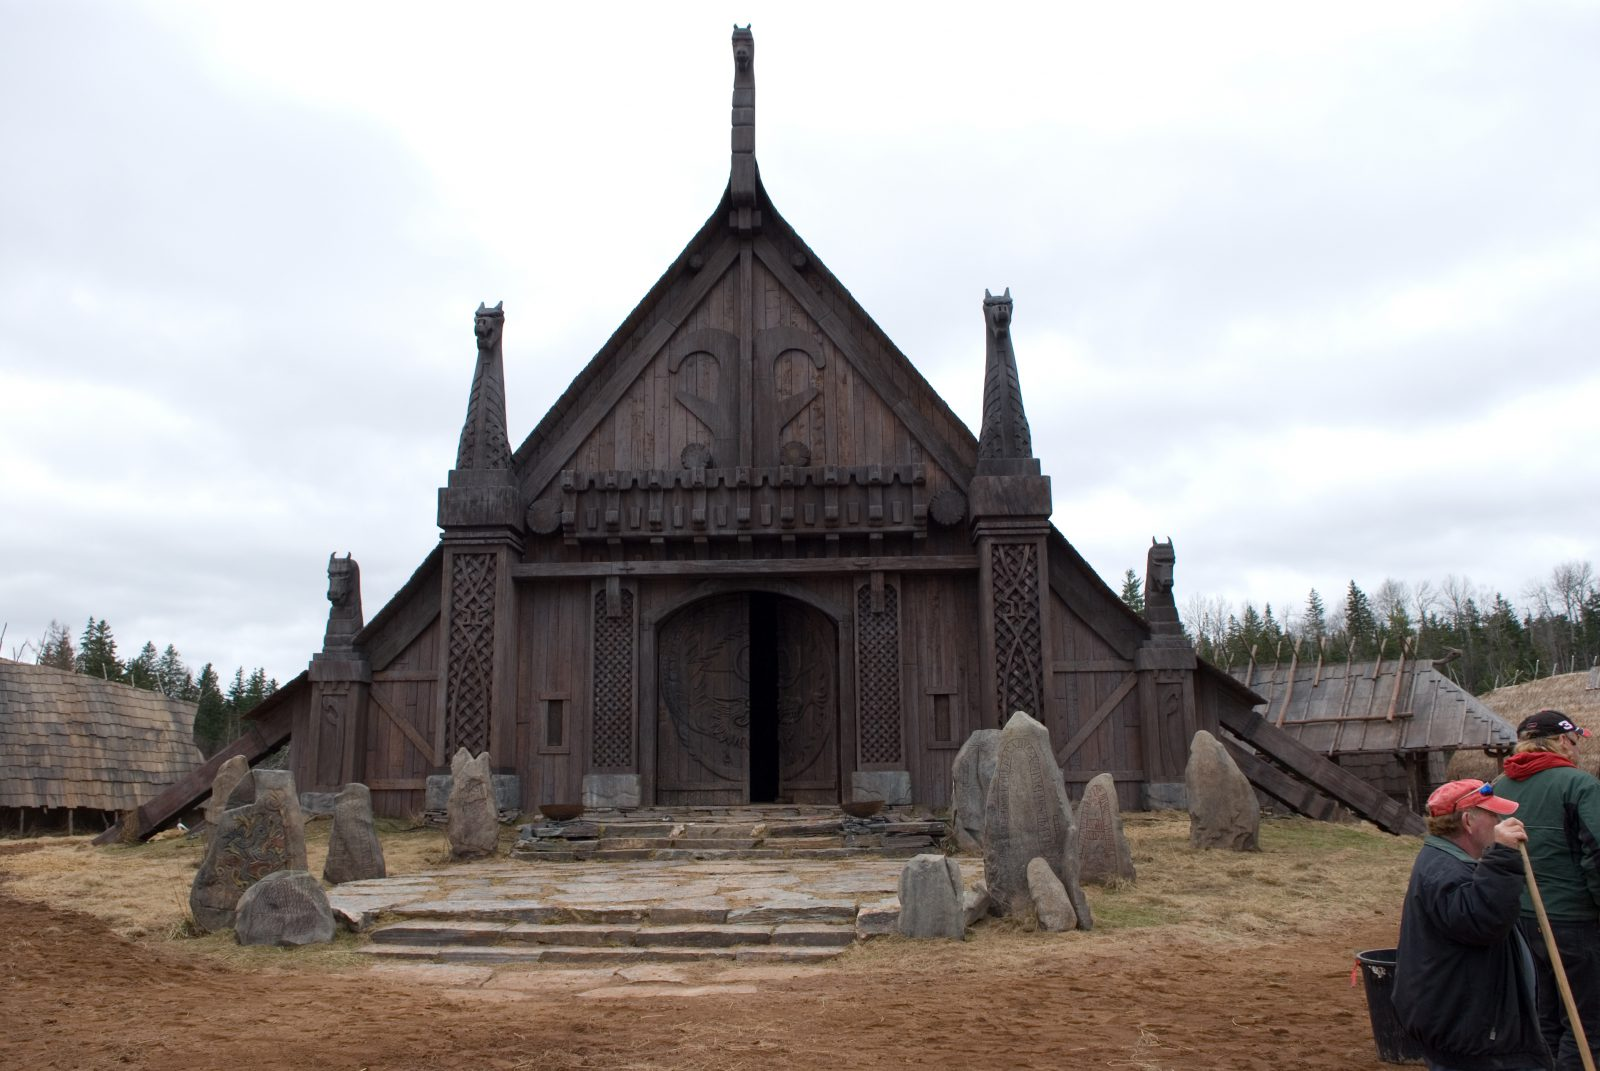 Viking temple